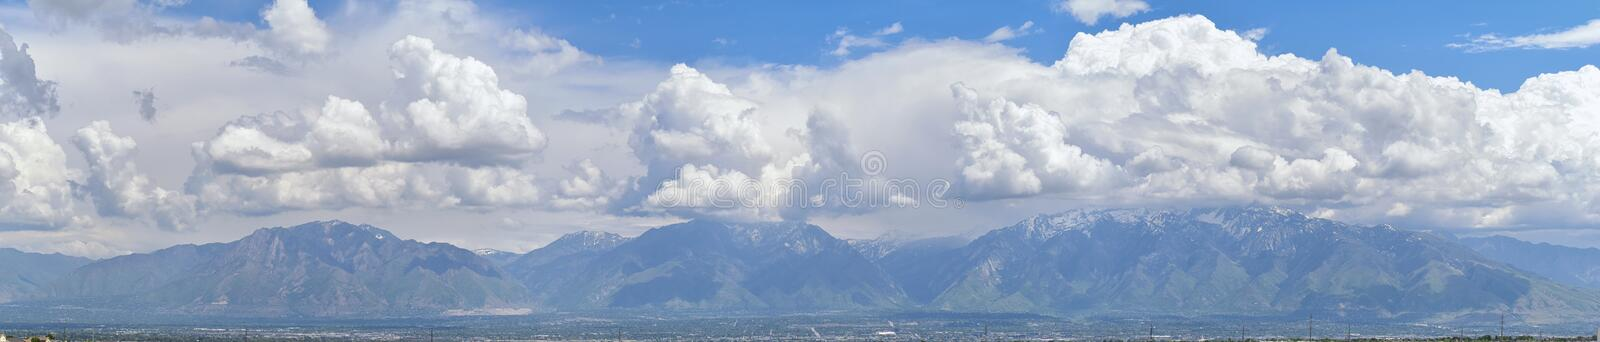 Panoramic view of Wasatch Front Rocky Mountains, Great Salt Lake Valley in early spring with melting snow and Cloudscape. royalty free stock photos